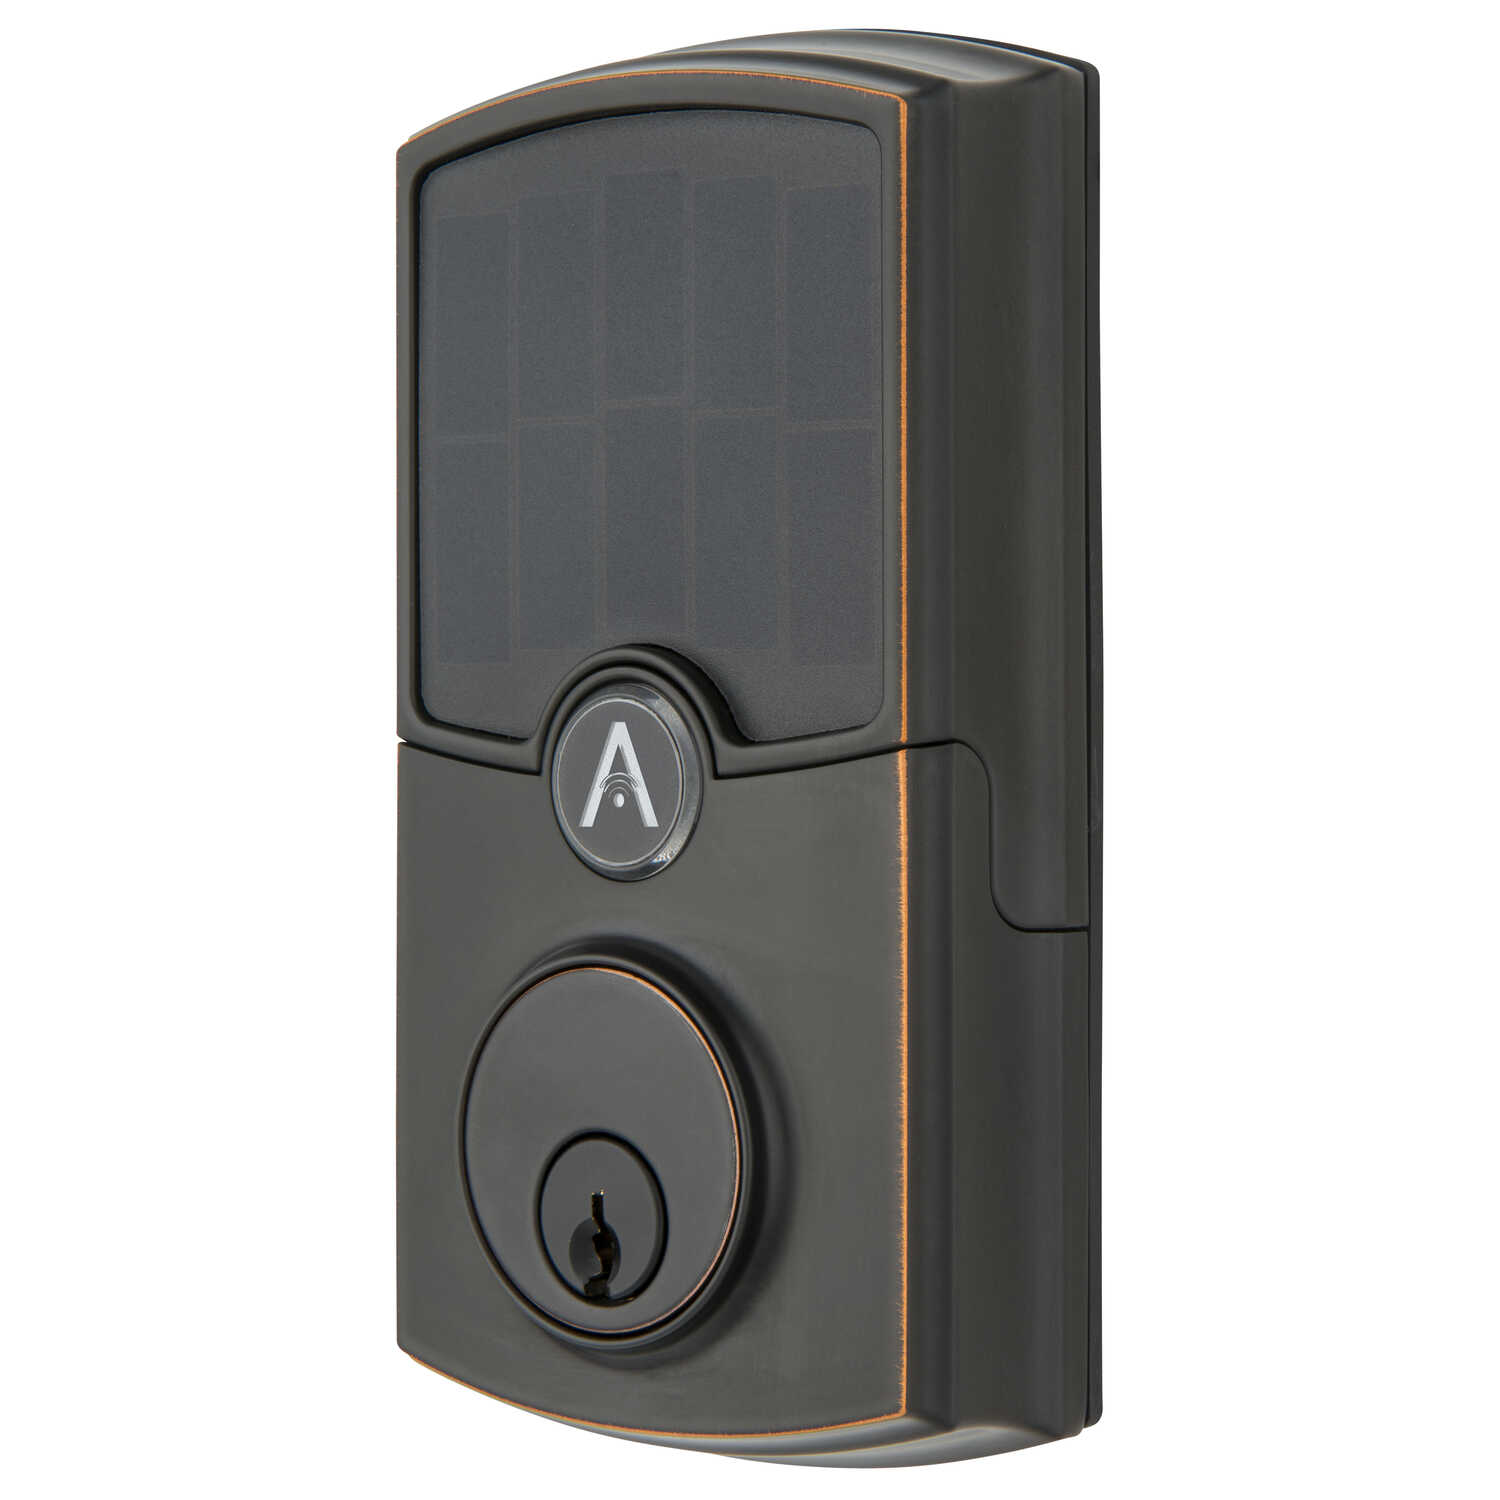 Array By Hampton  ARRAY Barrington  Tuscan Bronze  Zinc  Electronic Deadbolt